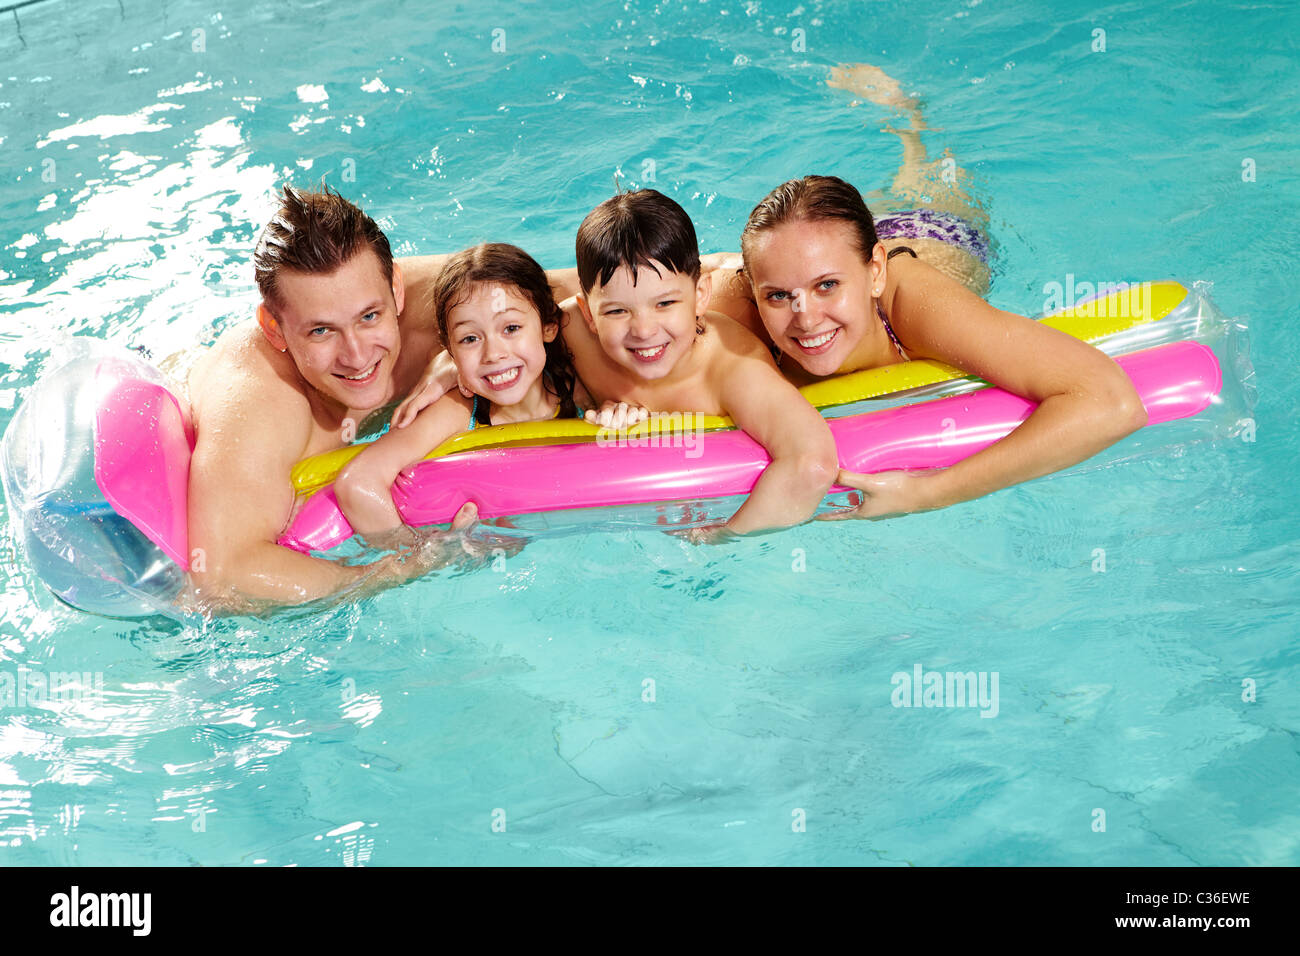 Cheerful family in swimming pool having nice time - Stock Image